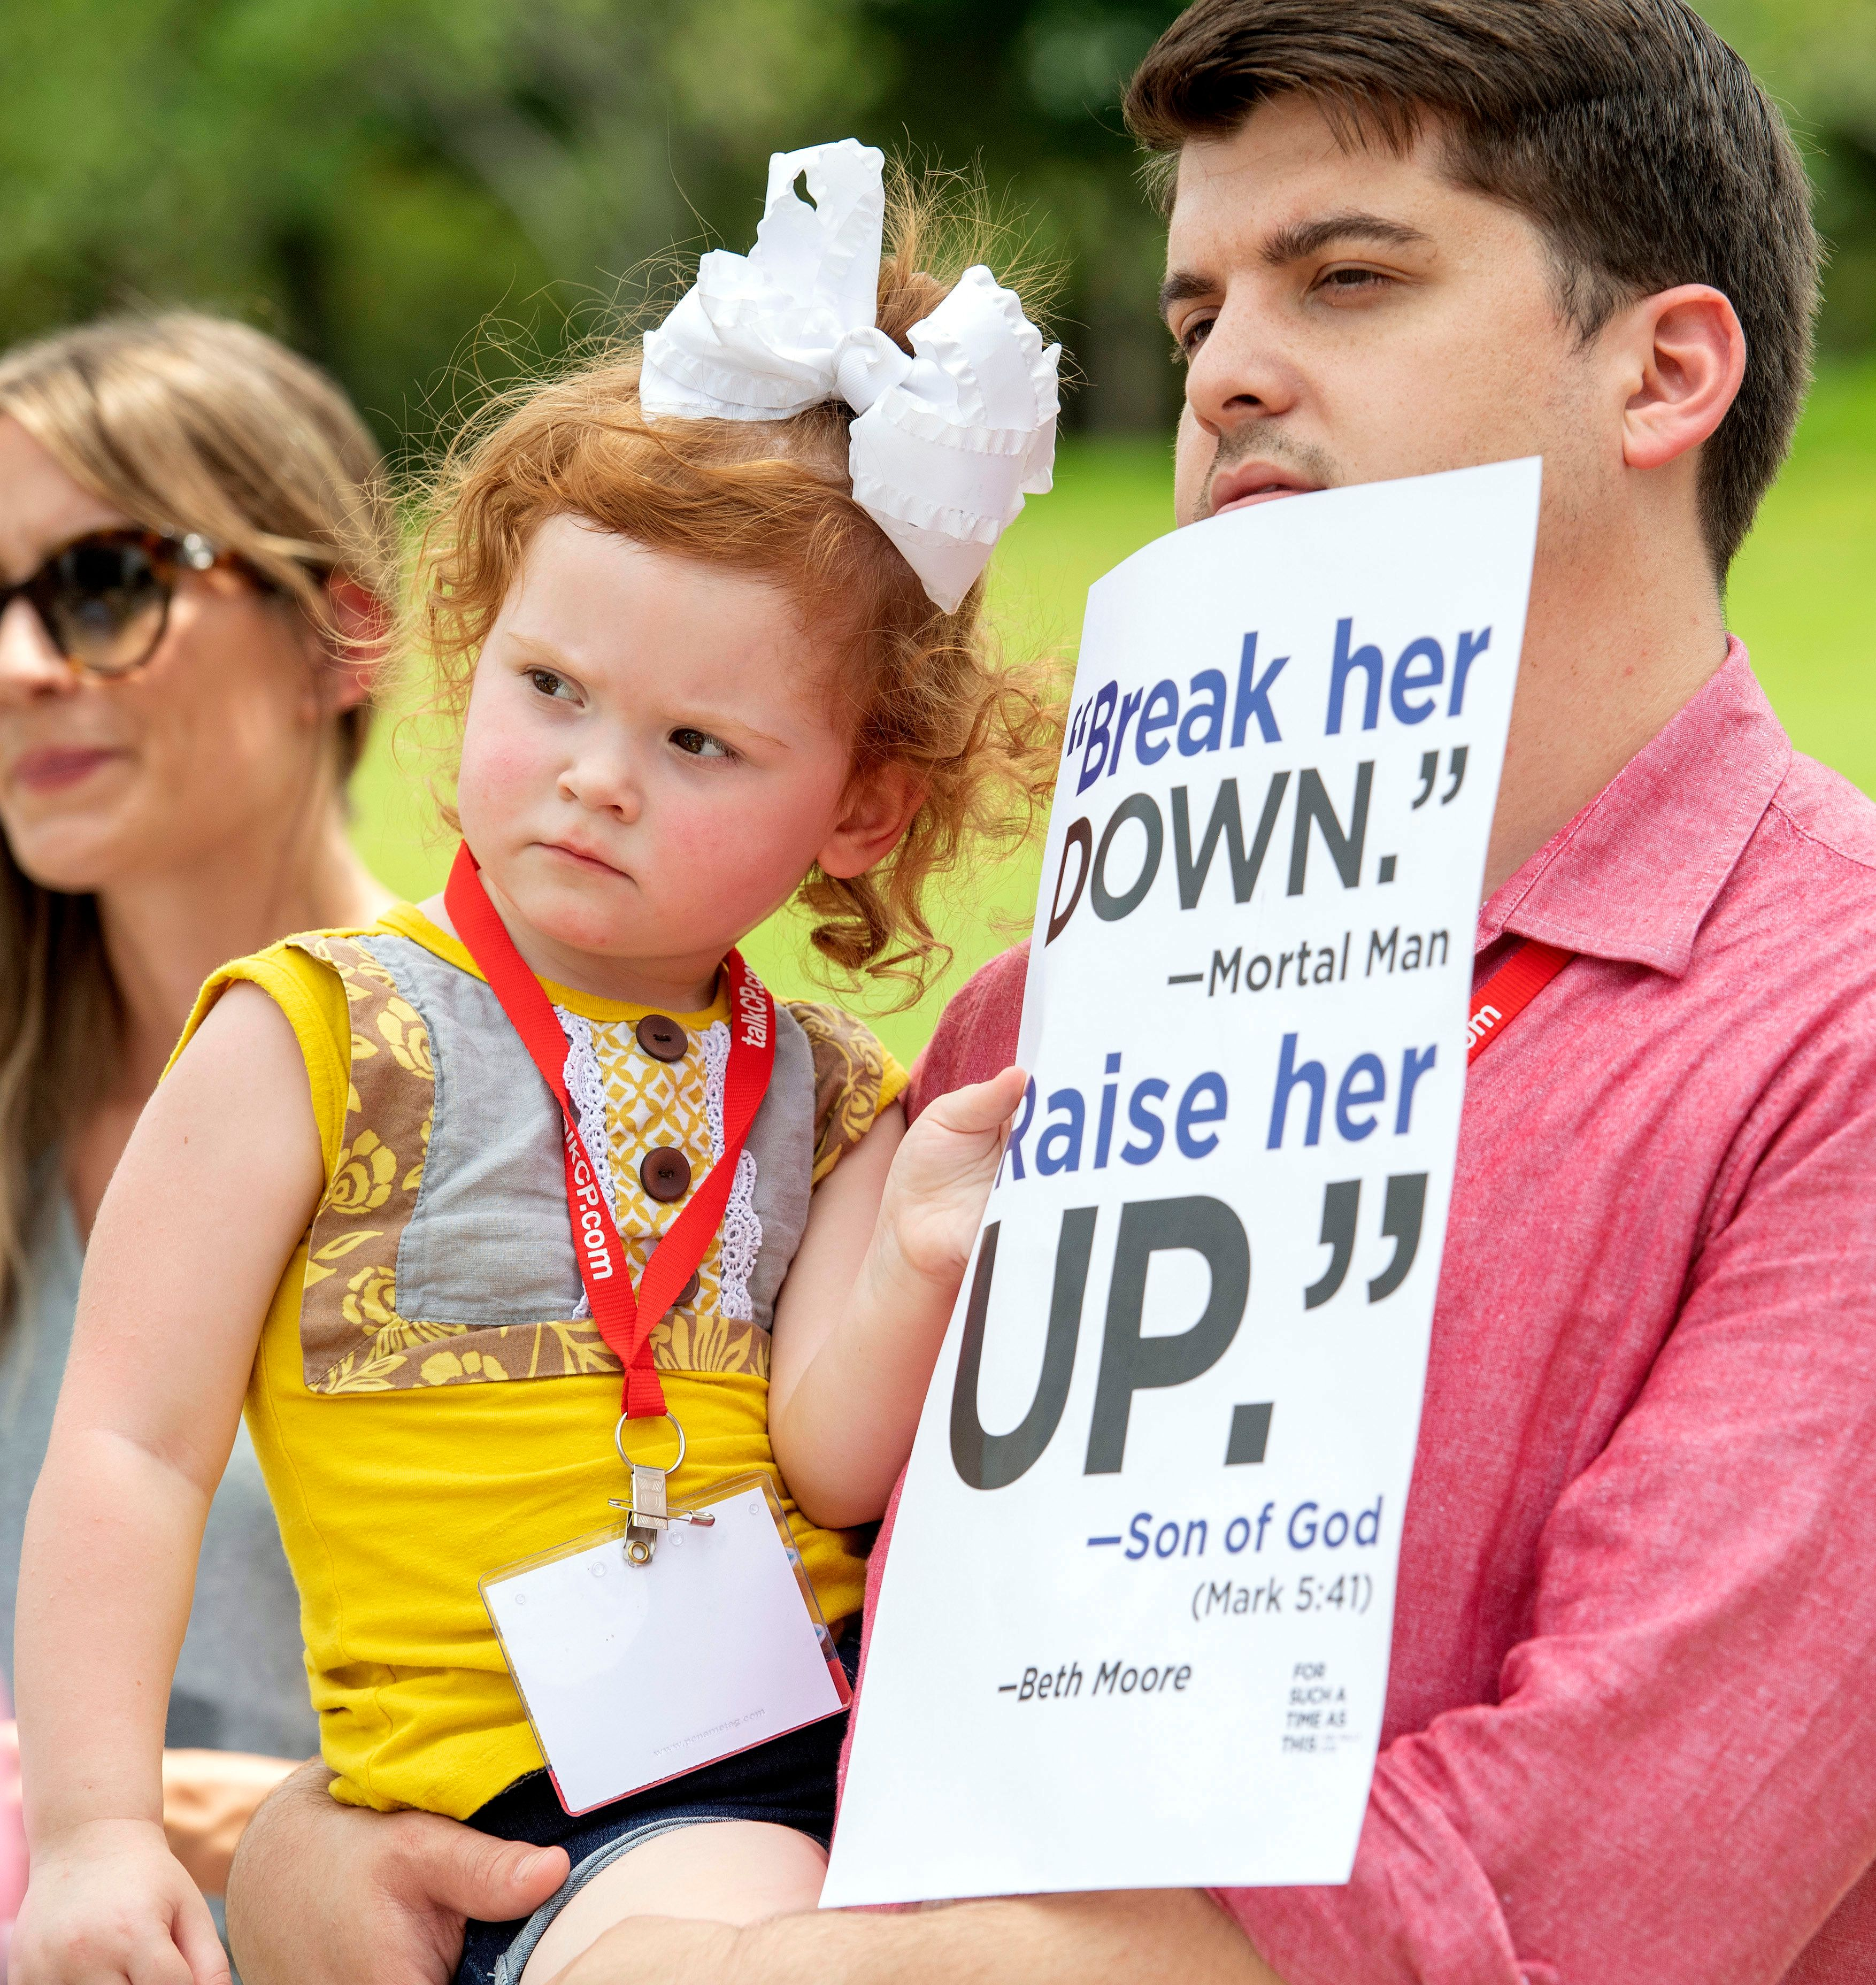 Chase Crawford, a Southern Baptist Convention messenger from Arkansas, and his 2-year-old daughter Chloe Jean Crawford listen to speakers during a rally protesting the Southern Baptist Convention's treatment of women on Tuesday, June 12, 2018 outside the convention's annual meeting at the Kay Bailey Hutchison Convention Center in Dallas. (AP Photo/Jeffrey McWhorter)